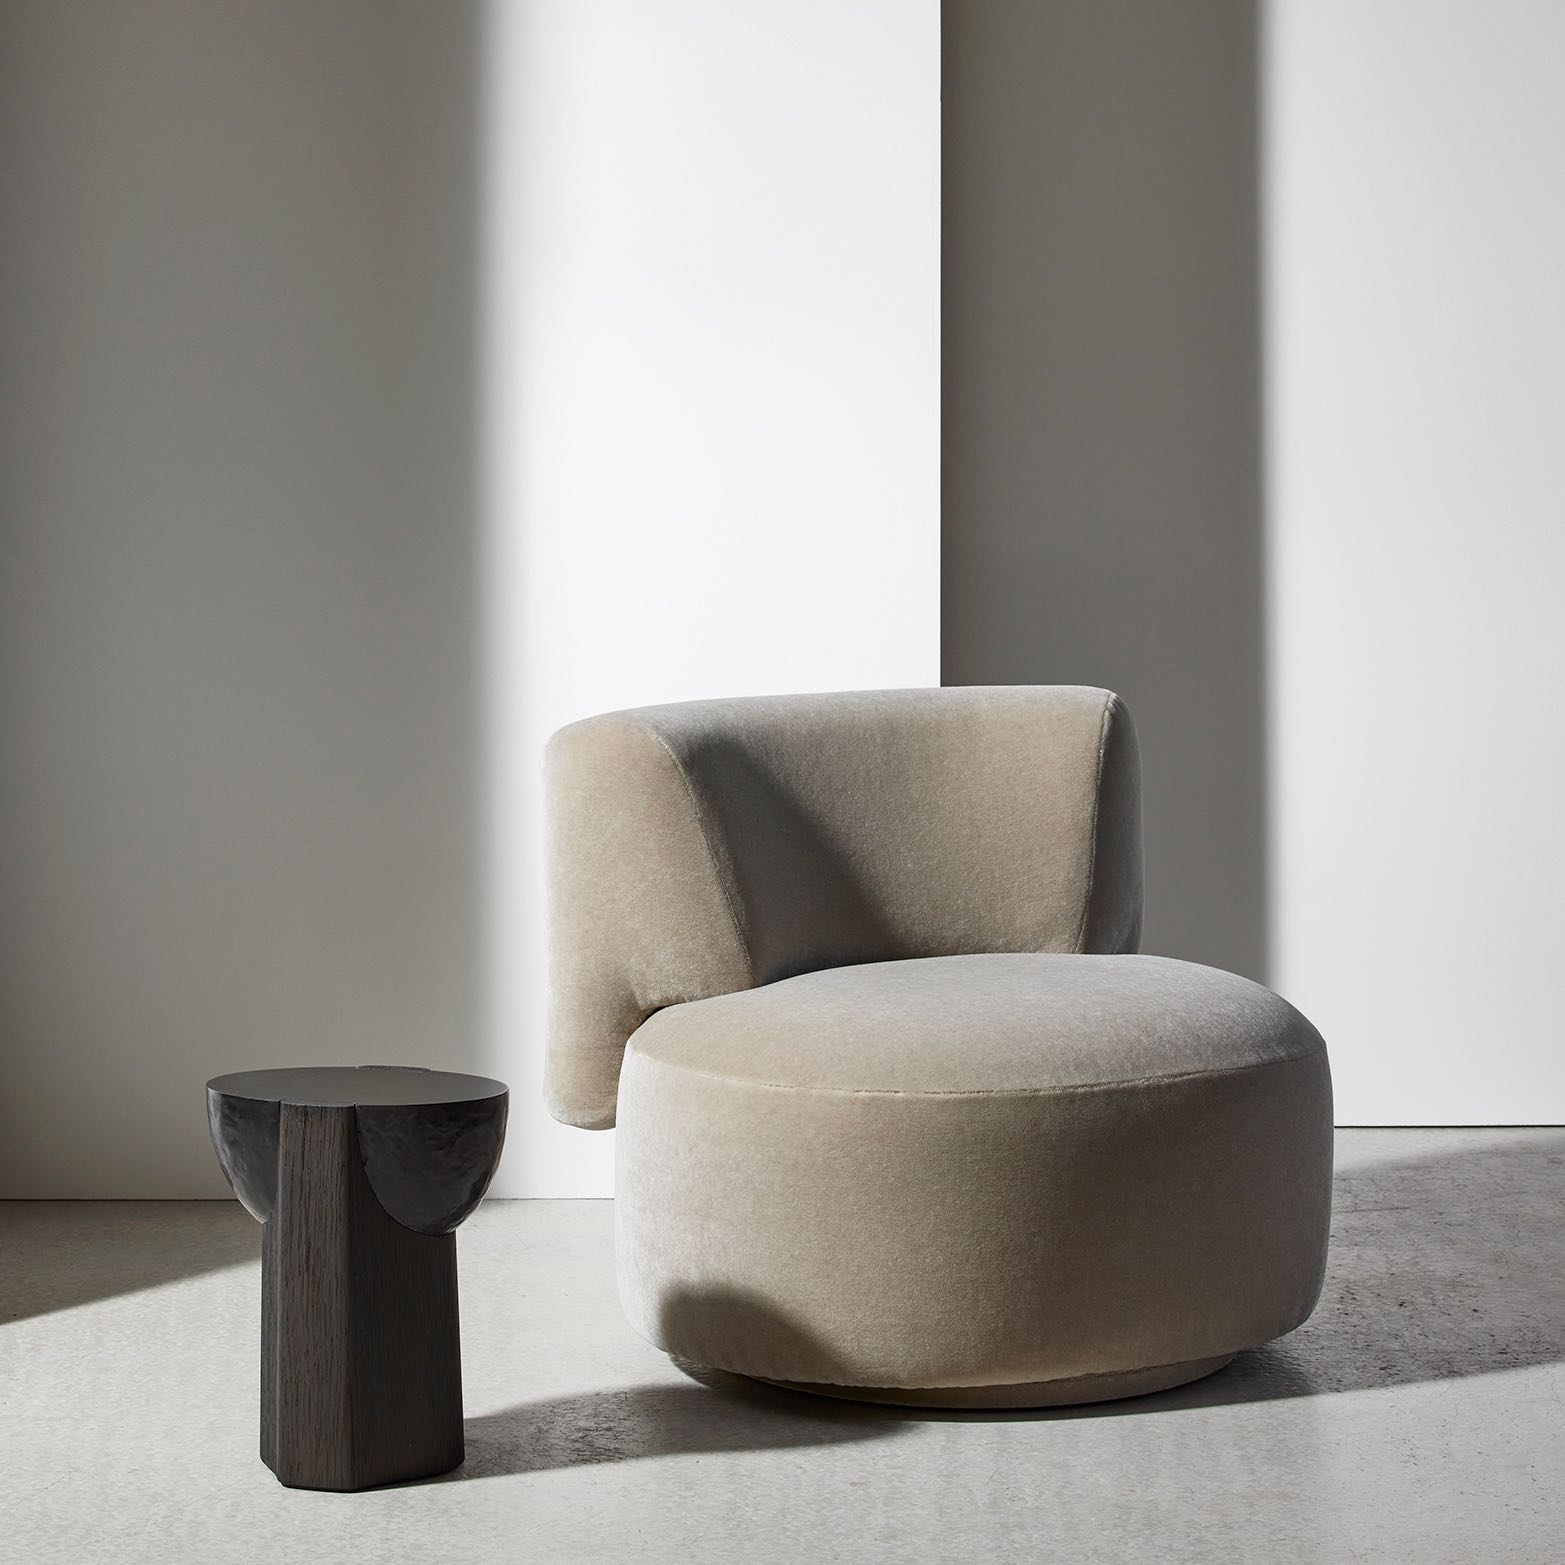 LEK-chair-Christophe-delcourt-Collection-Particuliere